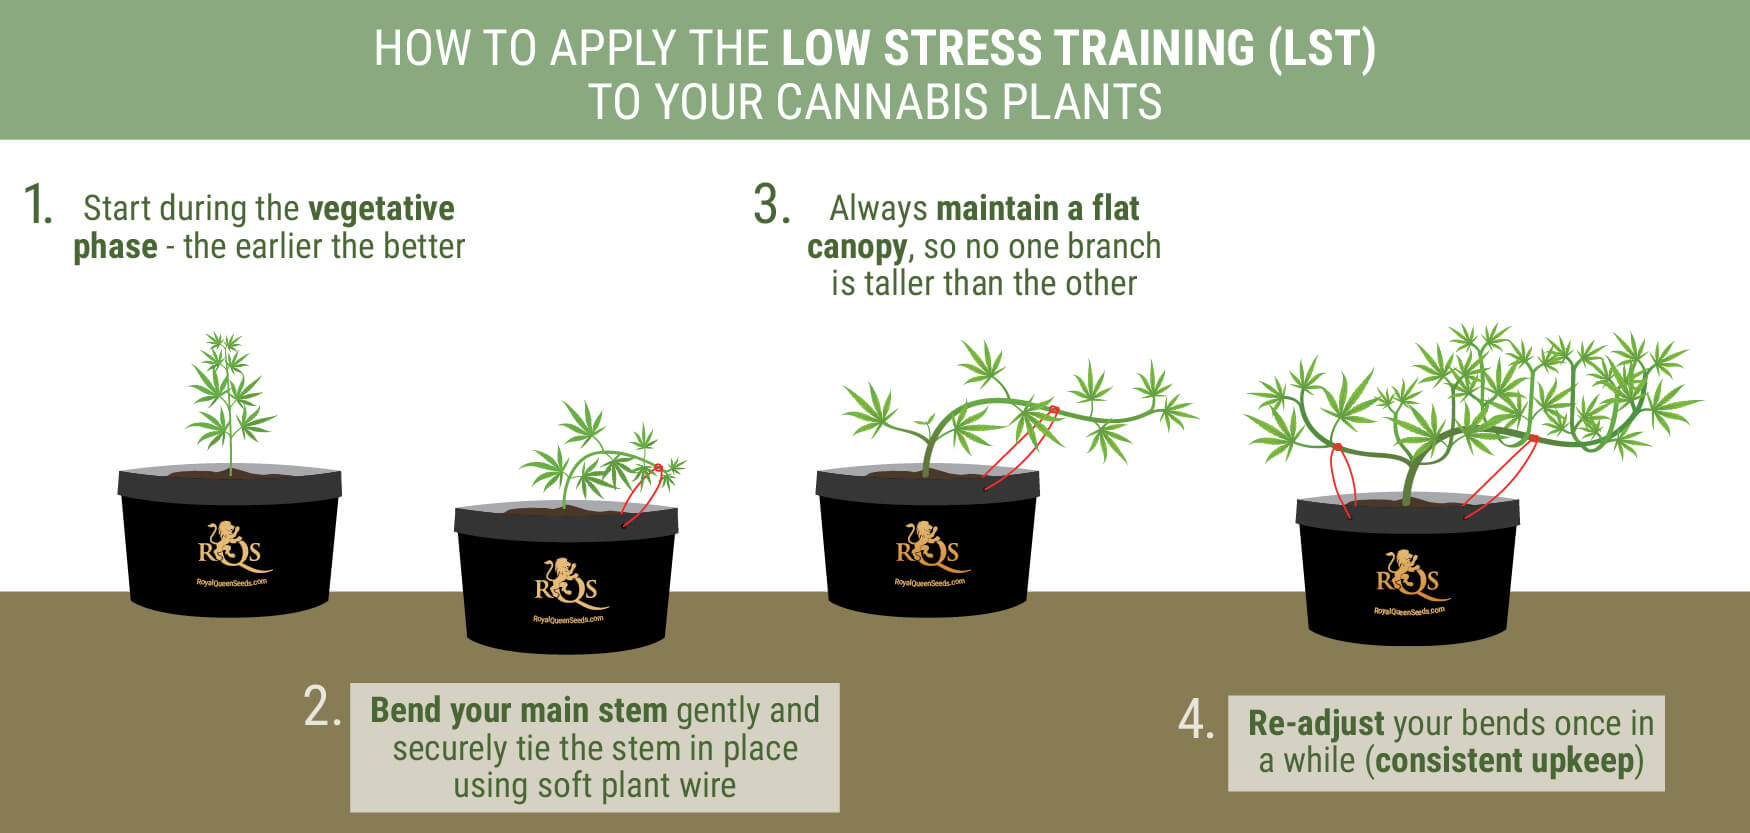 How To Apply The Low Stress Training